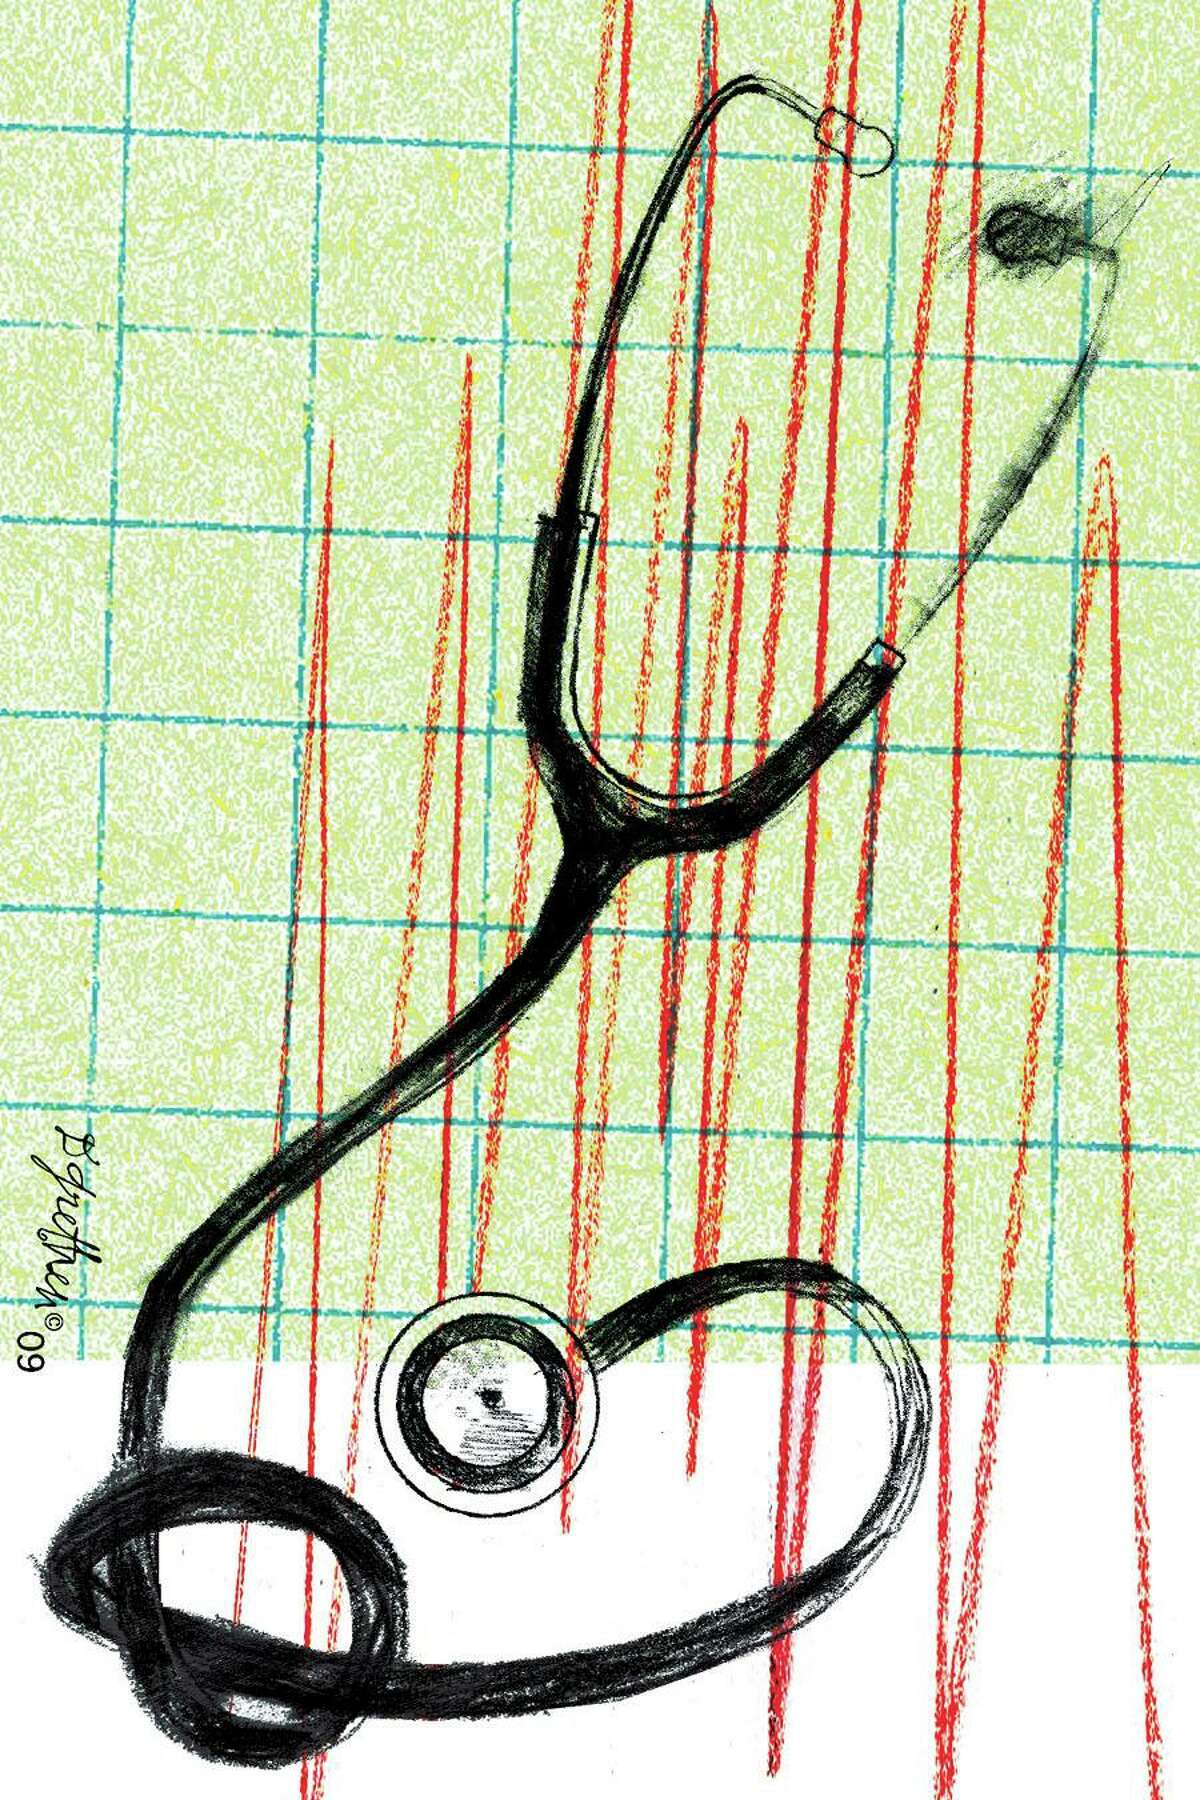 This artwork by Donna Grethen relates to health-care reform.